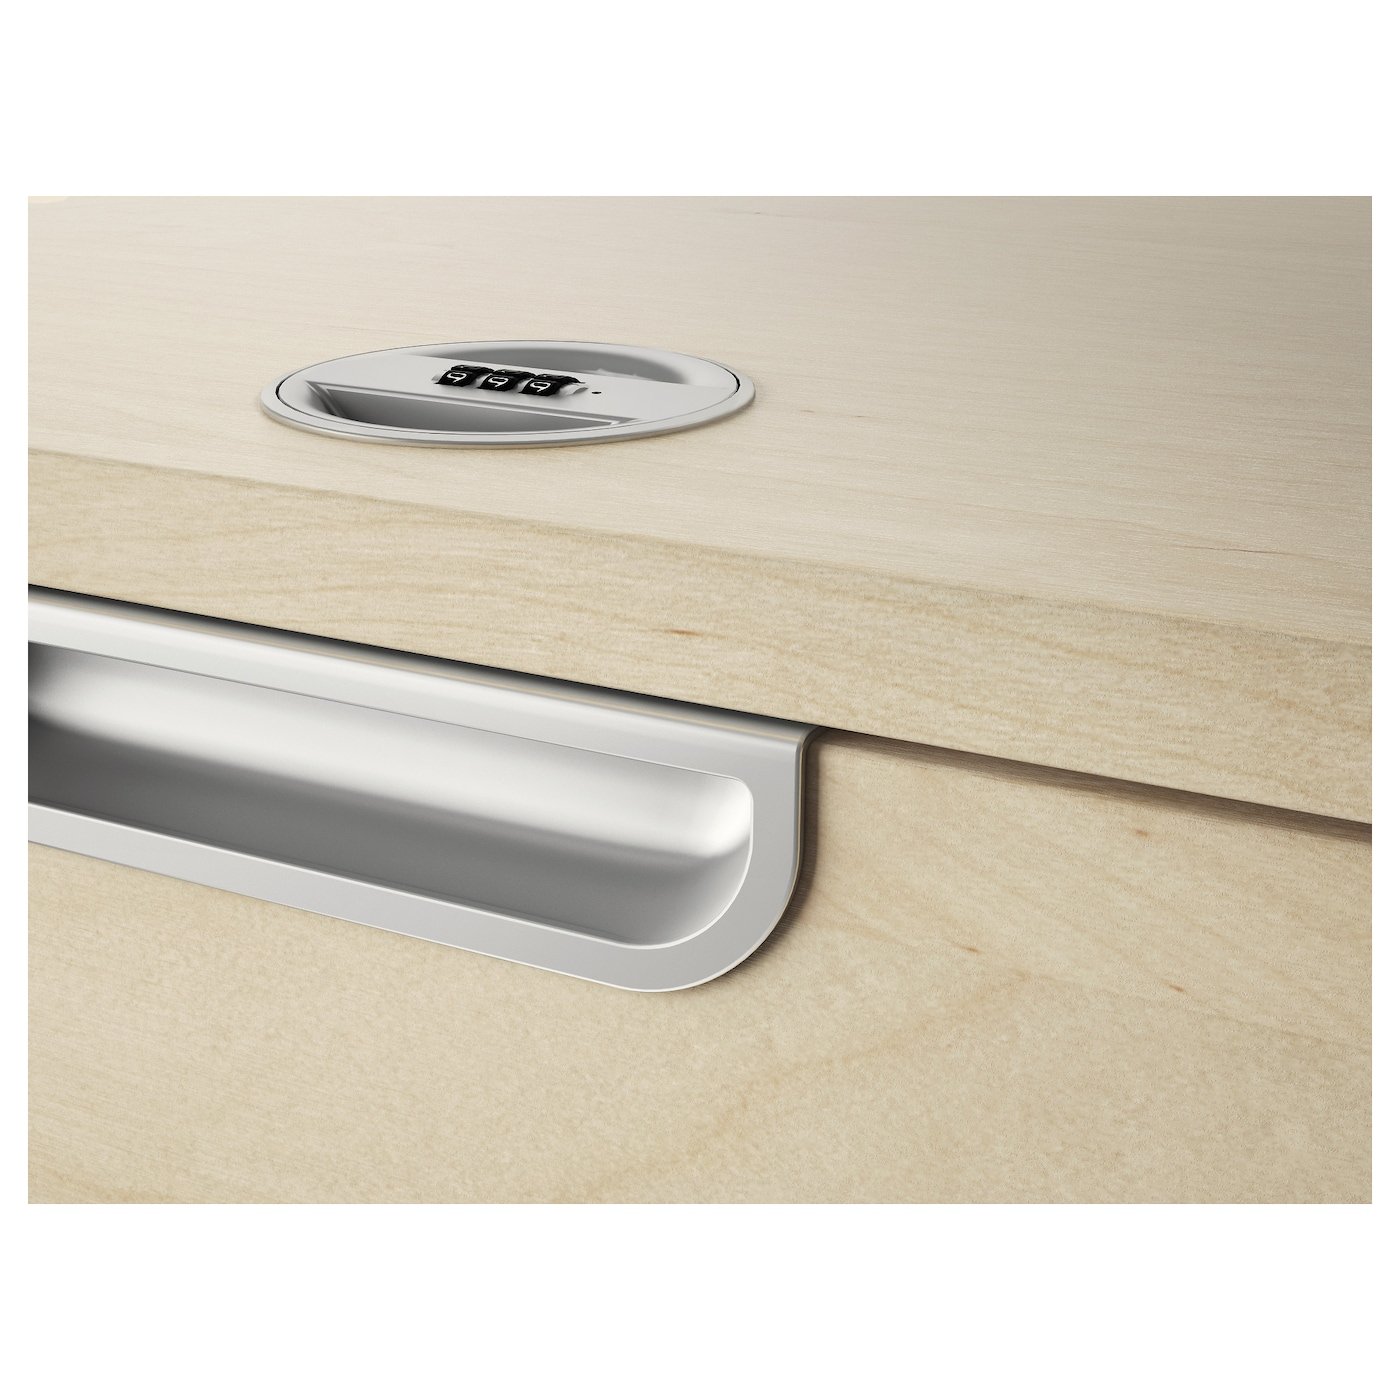 cabinets com cheap drawers inspirations for filing desk photos drawer full nsn halifax of cabinet lock with size striking closetoffice winsome metal locks amazon